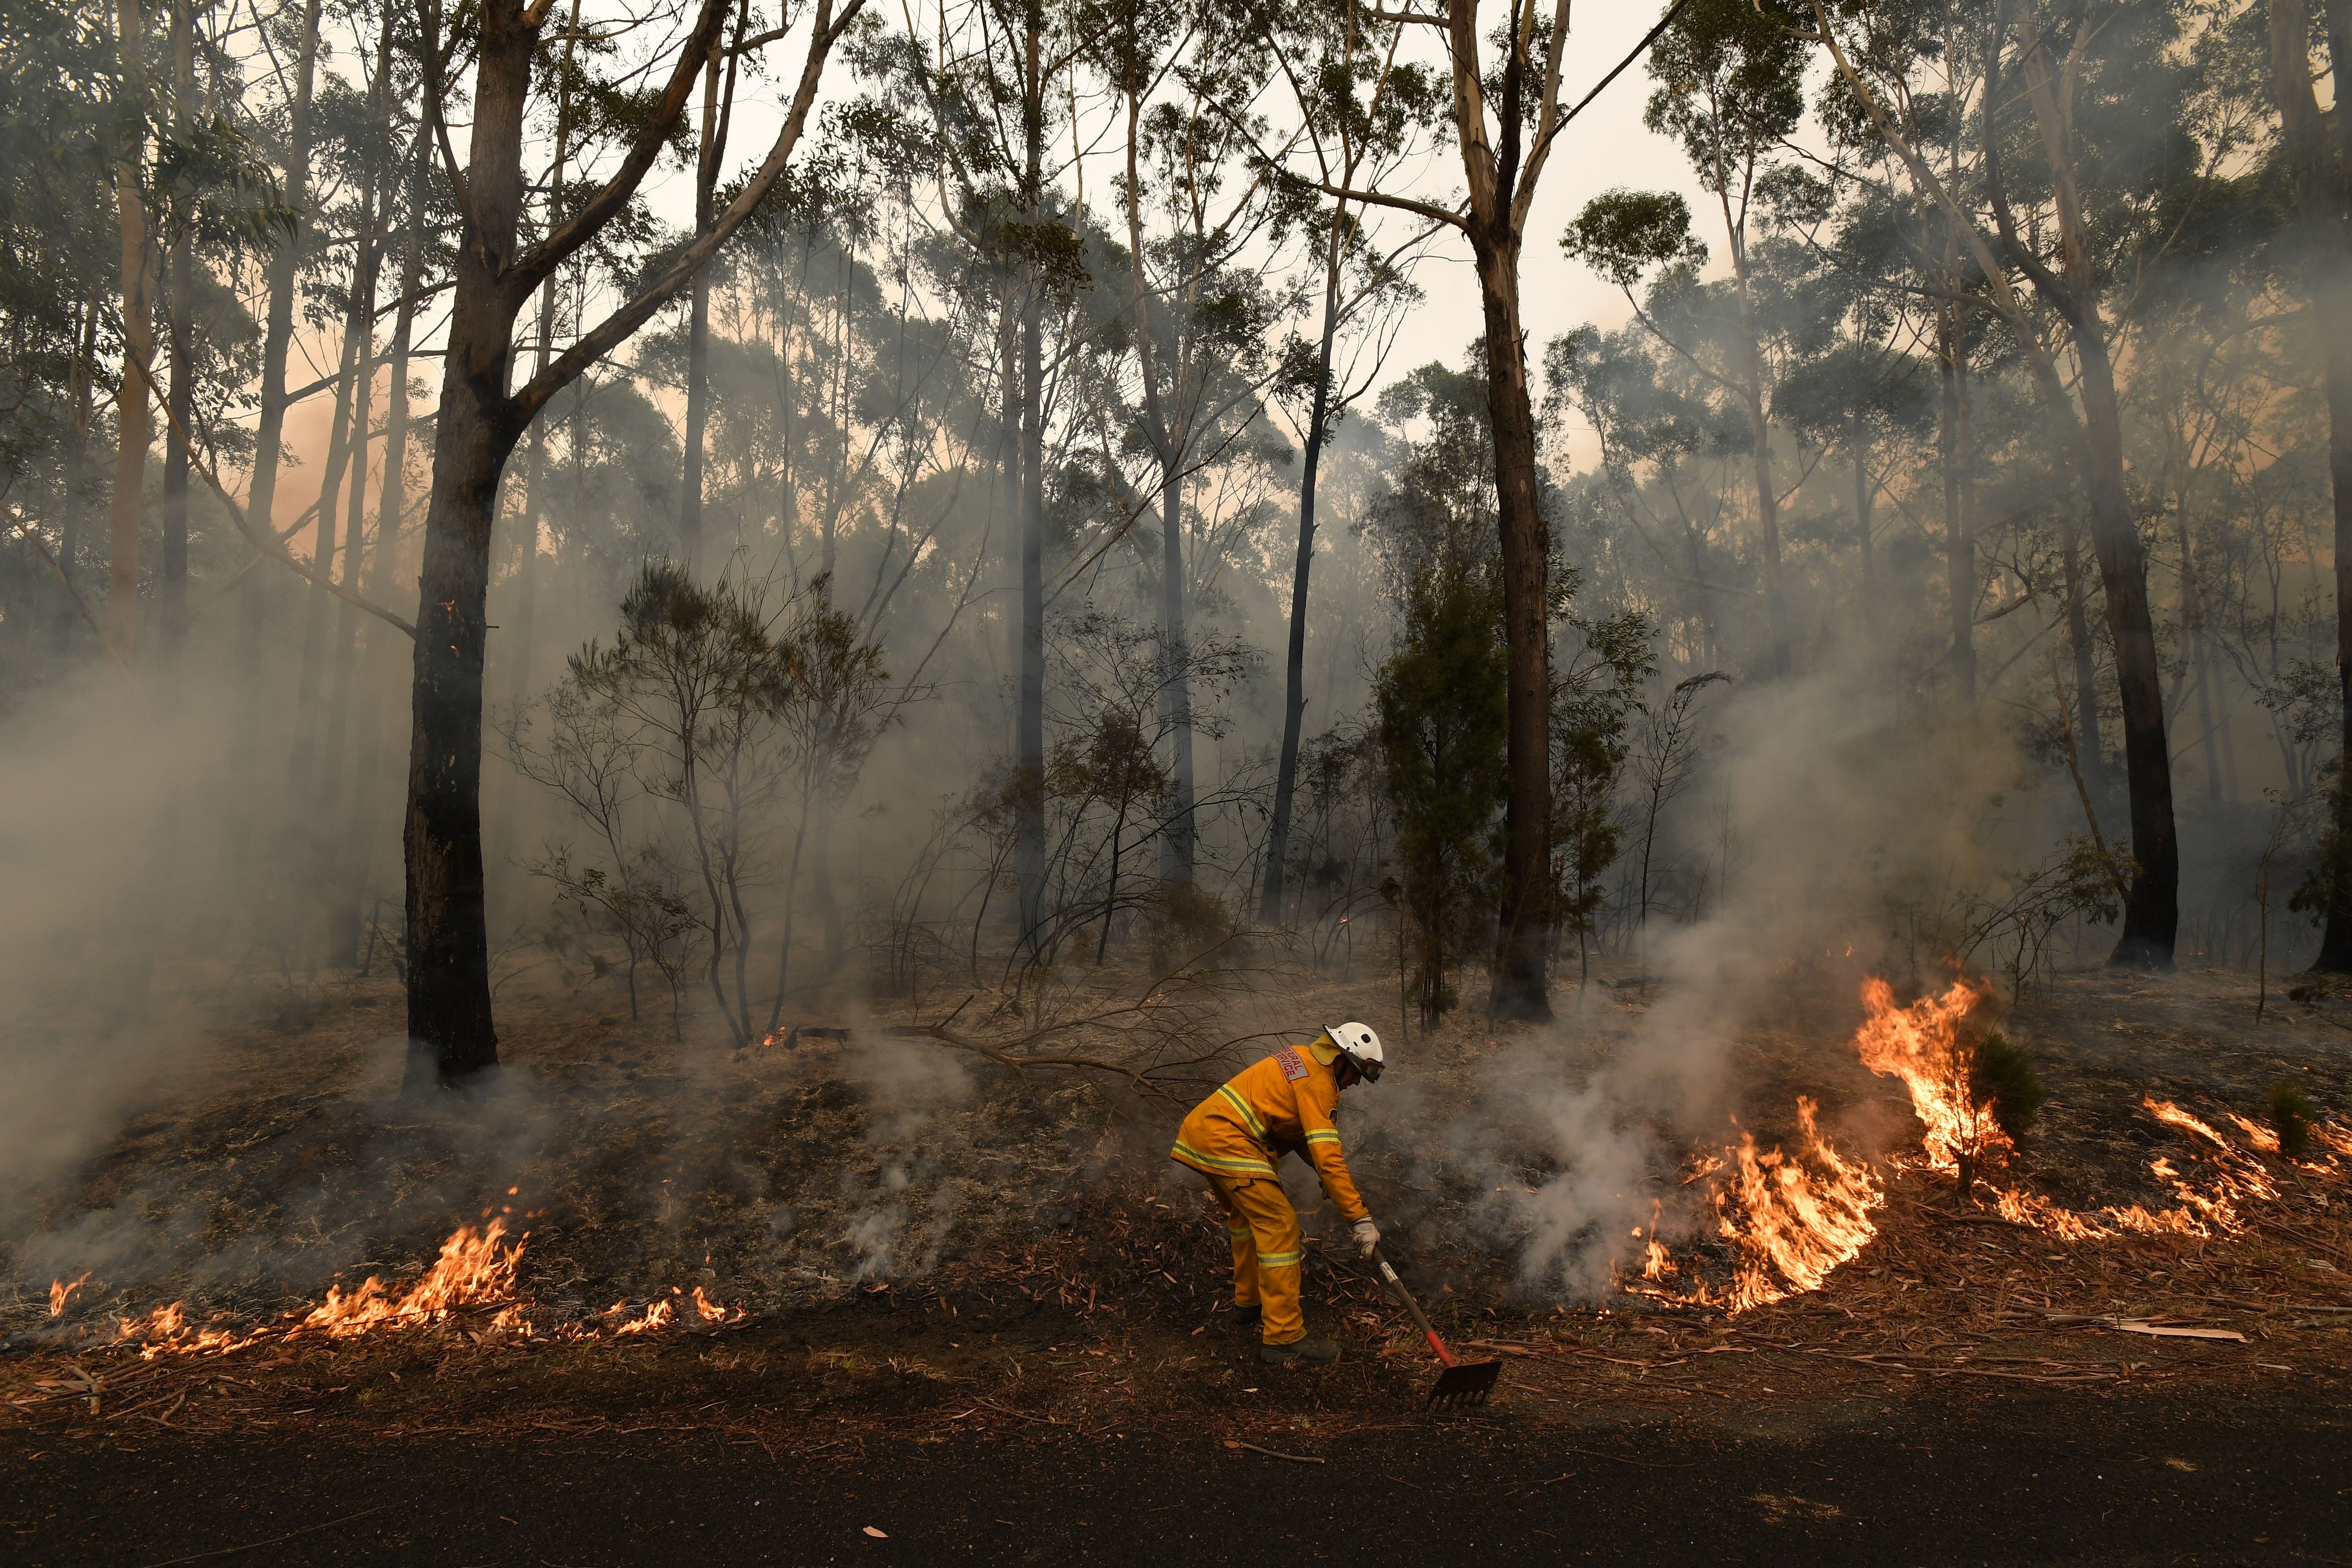 Mandatory Credit: Photo by DEAN LEWINS/EPA-EFE/Shutterstock (10518220i) A firefighter works to contain a small bushfire, which closed the Princes Highway, near Ulladulla, Australia, 05 January 2020. According to media reports, at least 1,200 homes in Victoria and New South Wales have been destroyed by fires this season, at least 18 people have died, and more than 5.9 million hectares have been burnt. Bushfires in Australia, Ulladulla - 05 Jan 2020